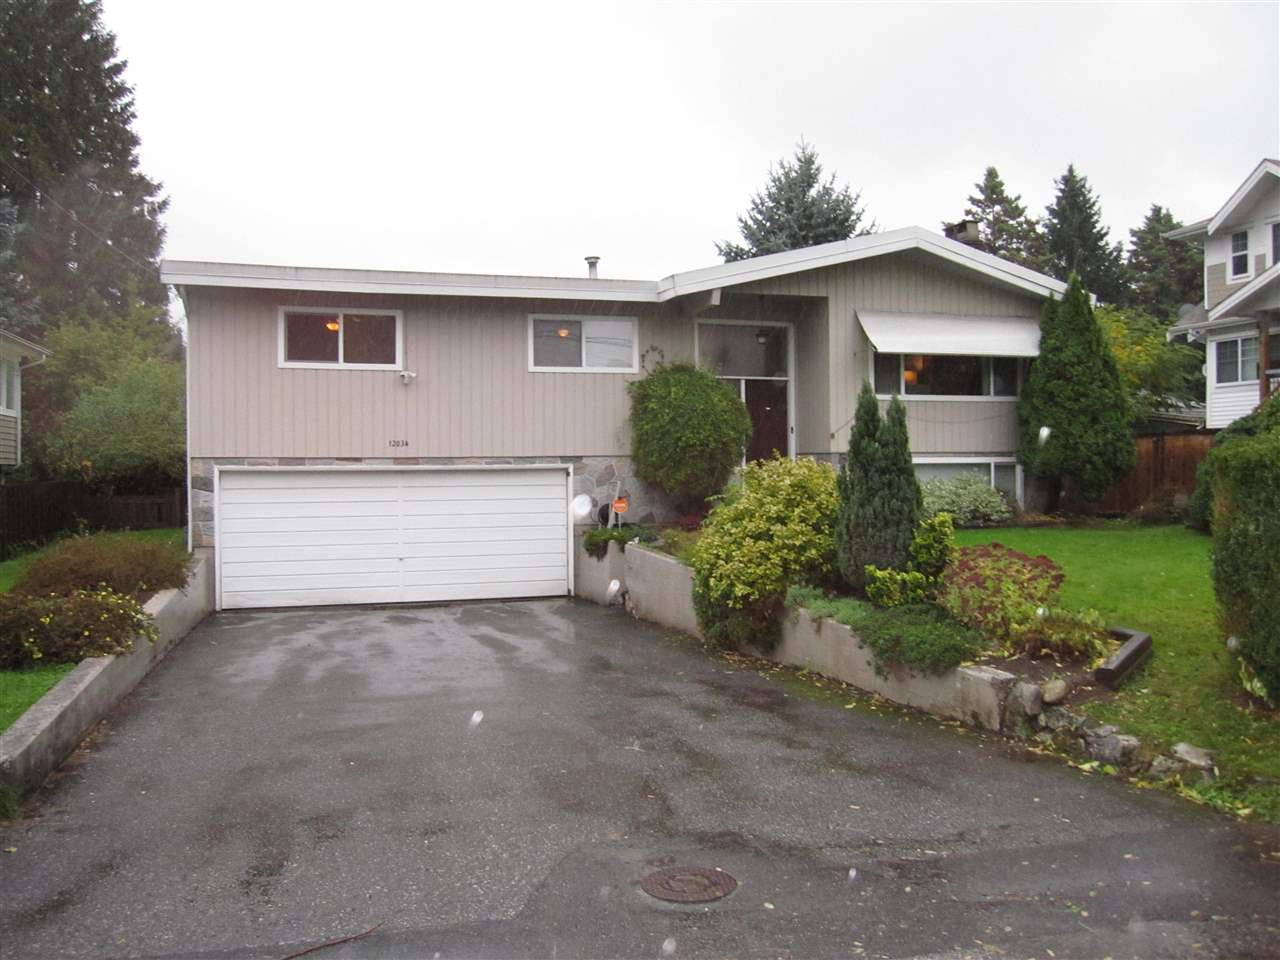 Main Photo: 12034 YORK Street in Maple Ridge: West Central House for sale : MLS®# R2215853